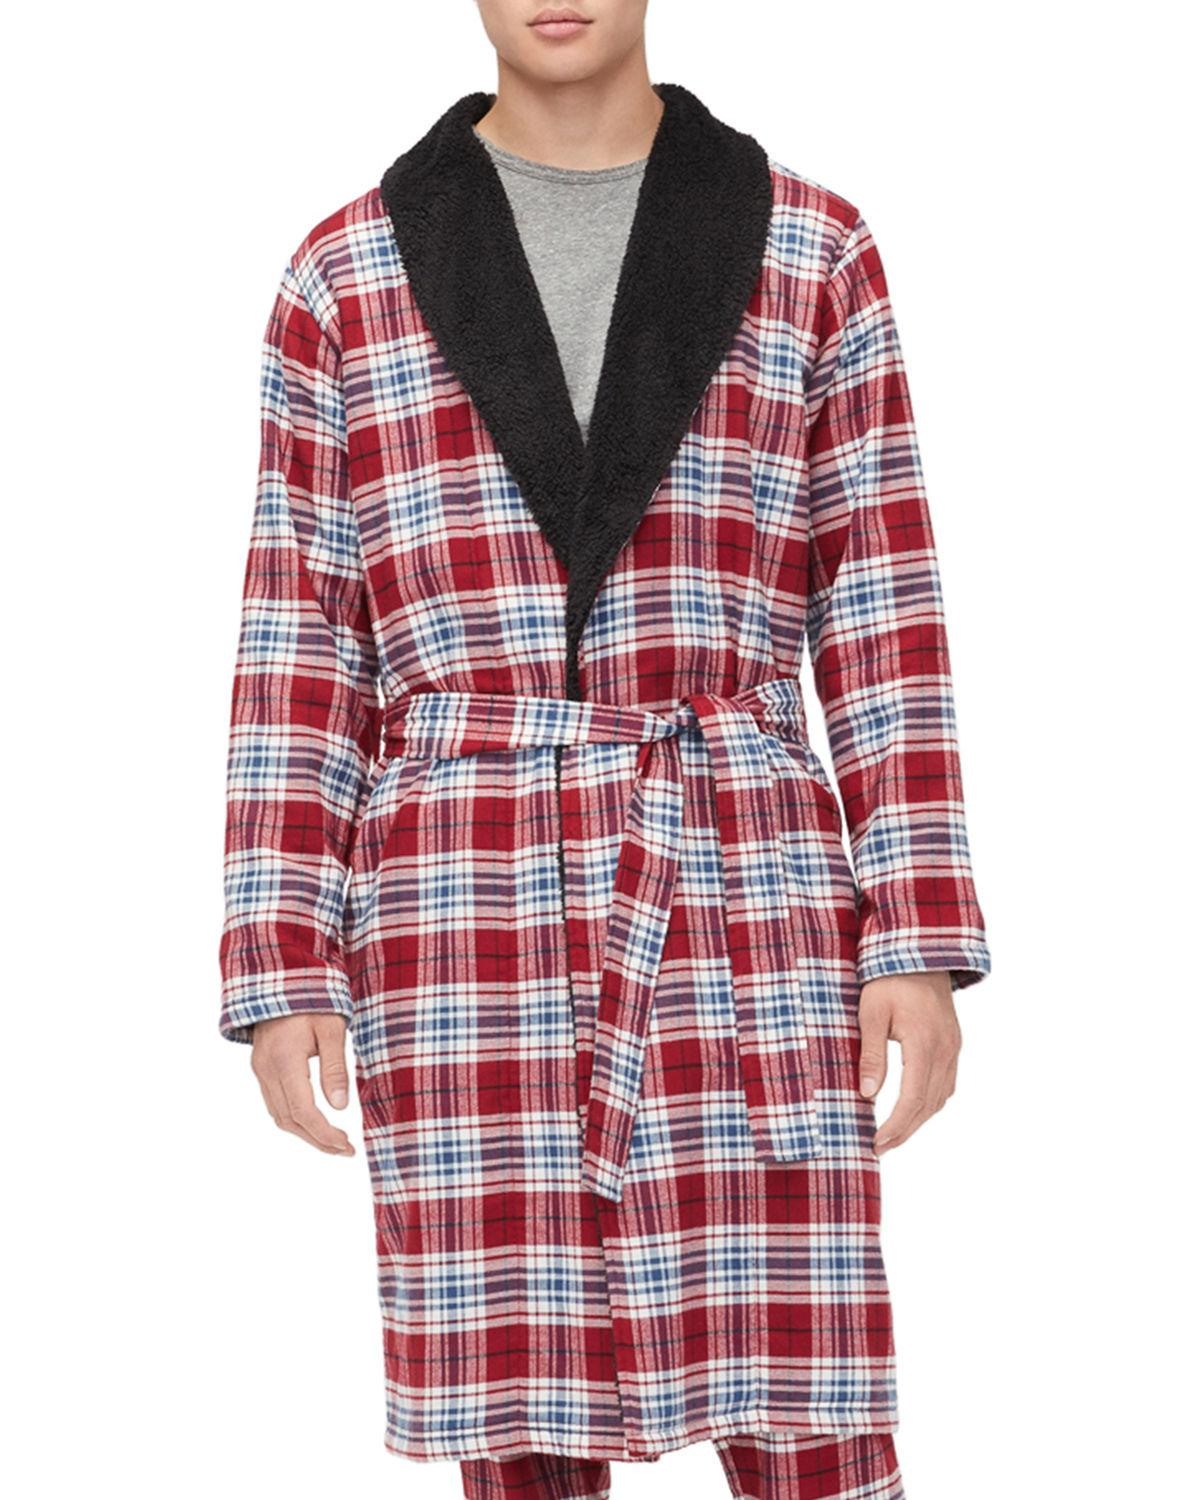 cbf8edb848 Ugg Men S Kalib Sherpa-Lined Plaid Robe In Chili Pepper Plaid